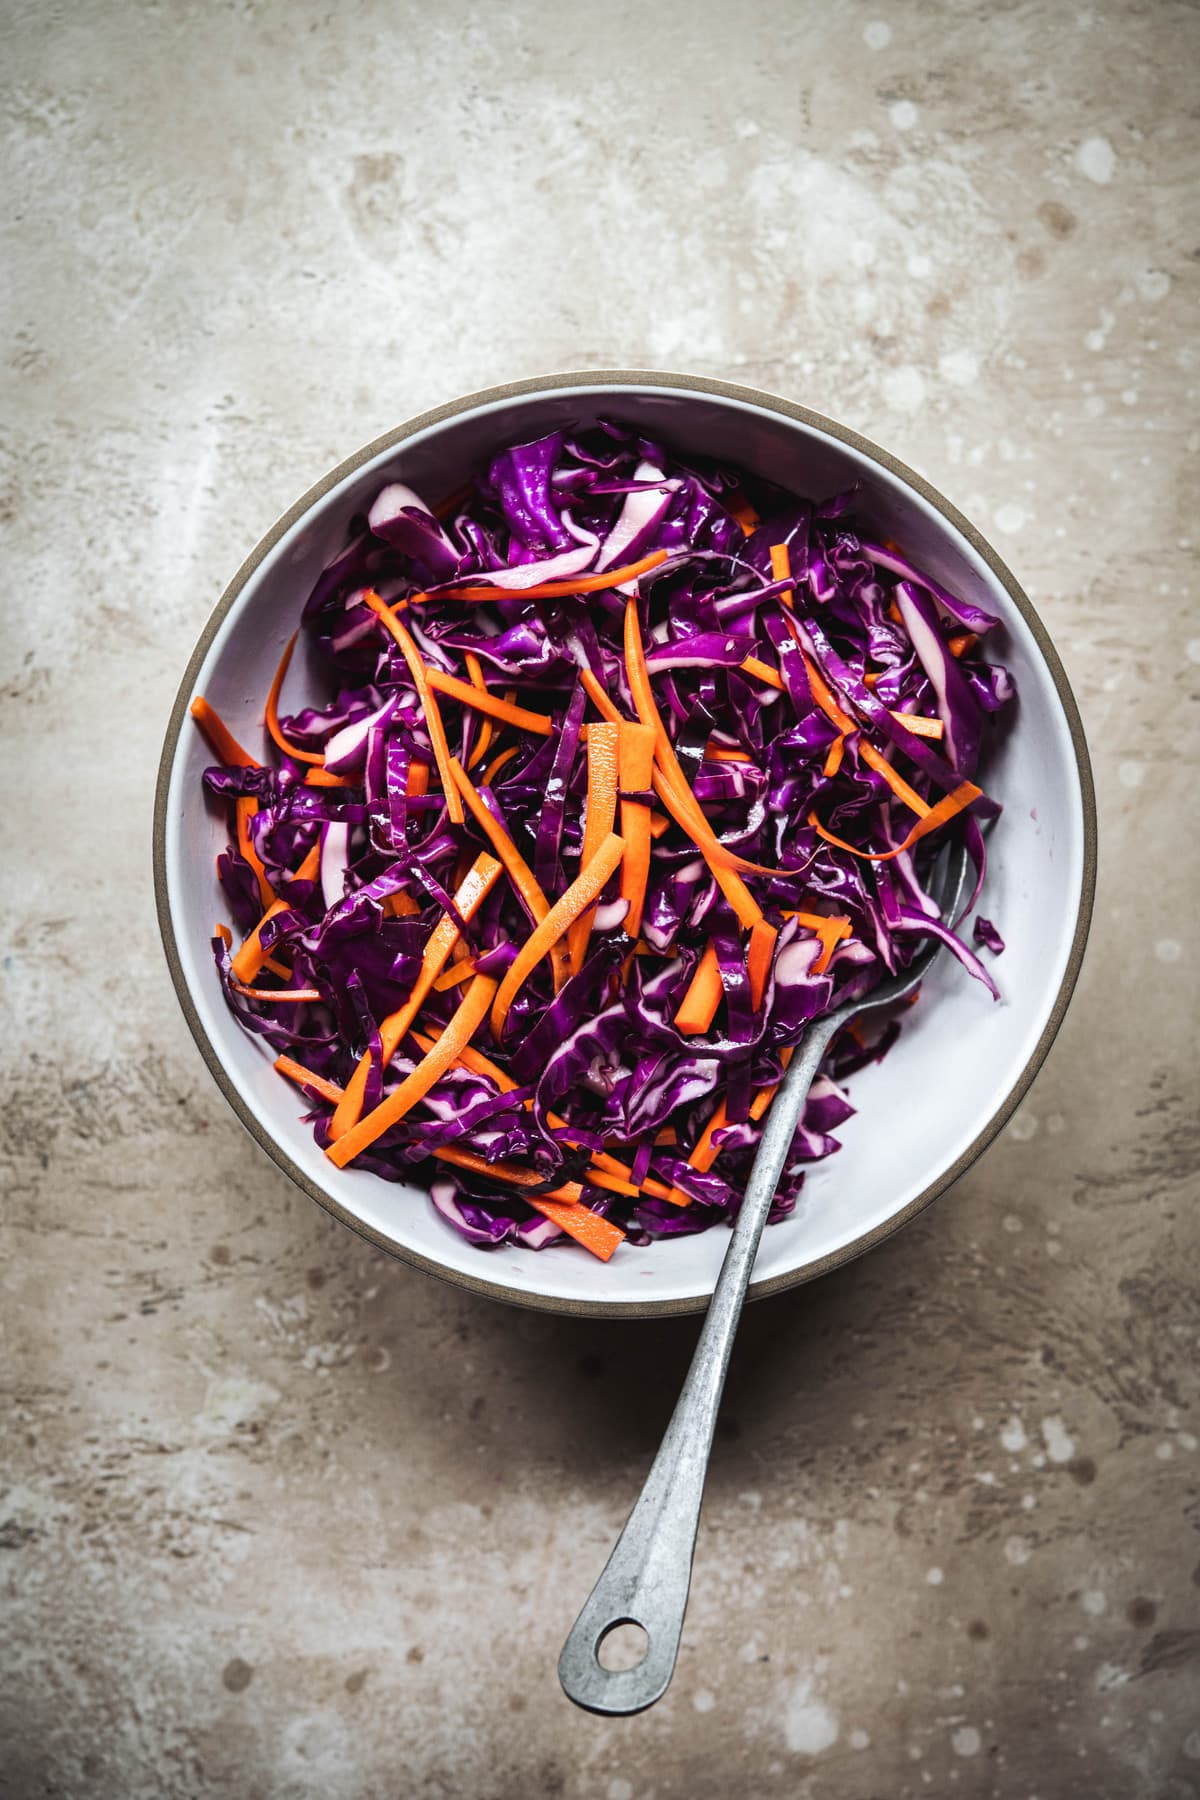 Overhead view of marinated purple cabbage and carrots in a white bowl to top asian lettuce wraps